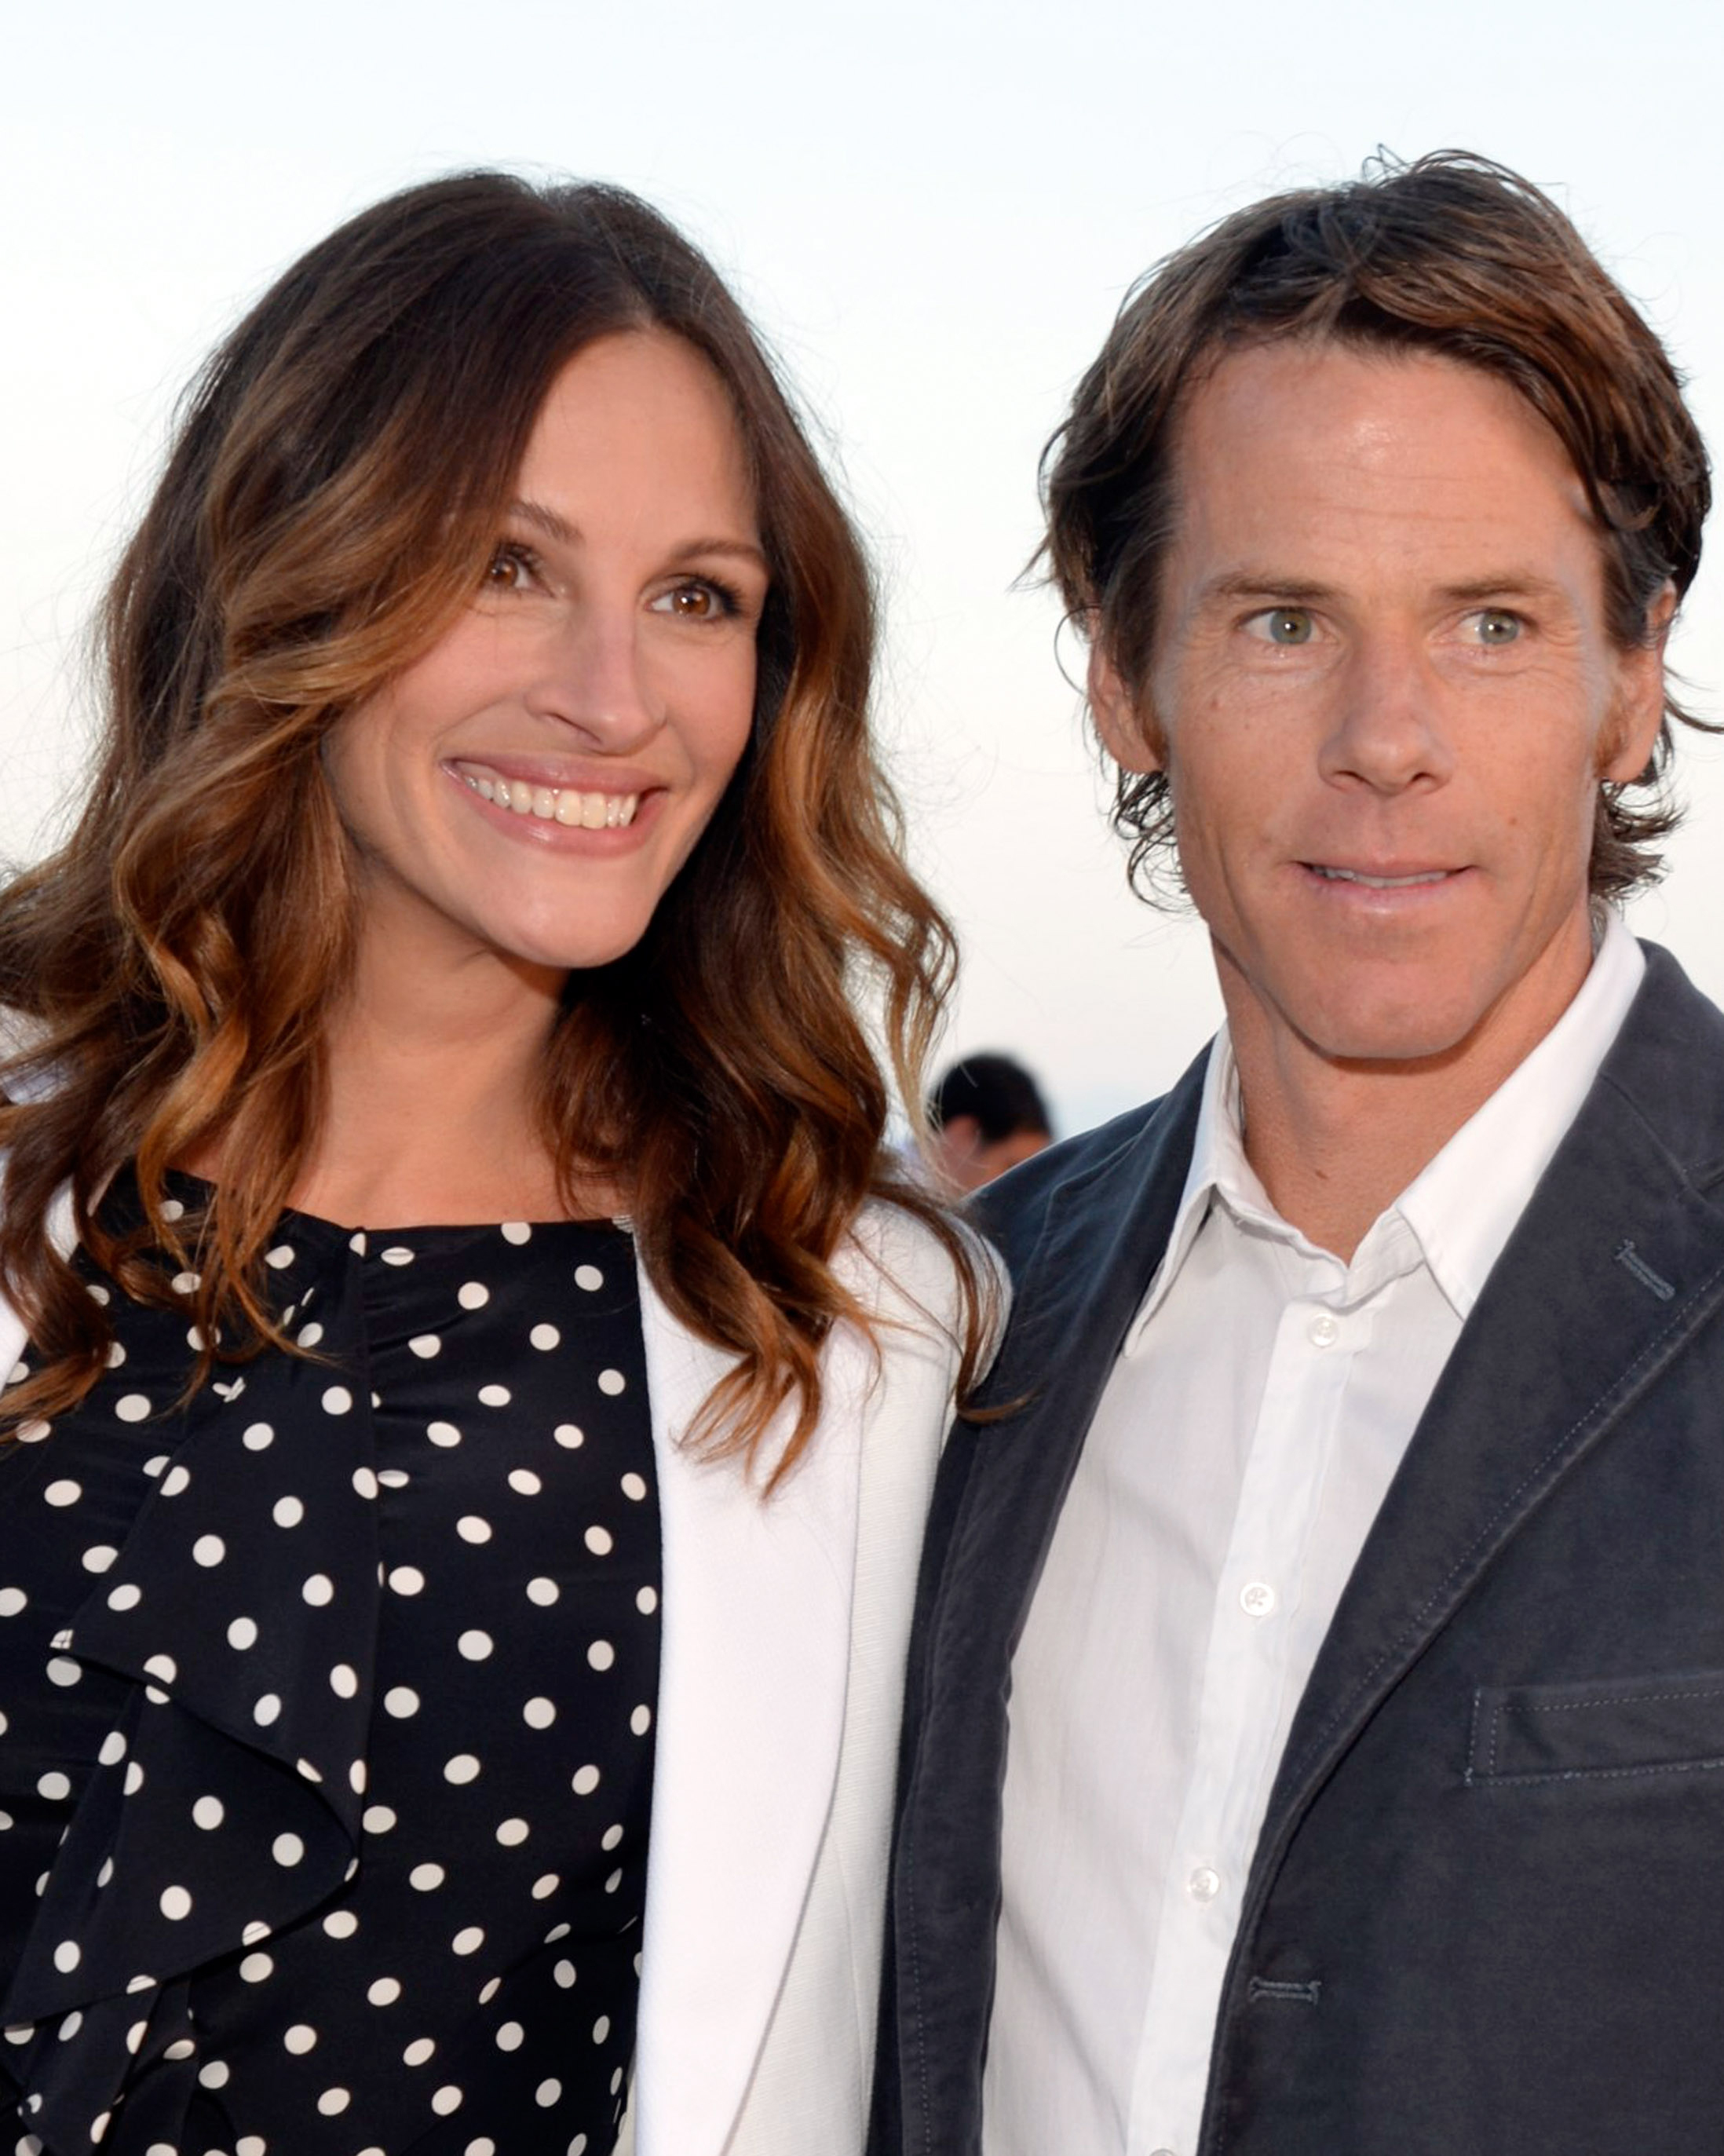 celebrity-marriage-advice-julia-roberts-daniel-moder-1115.jpg